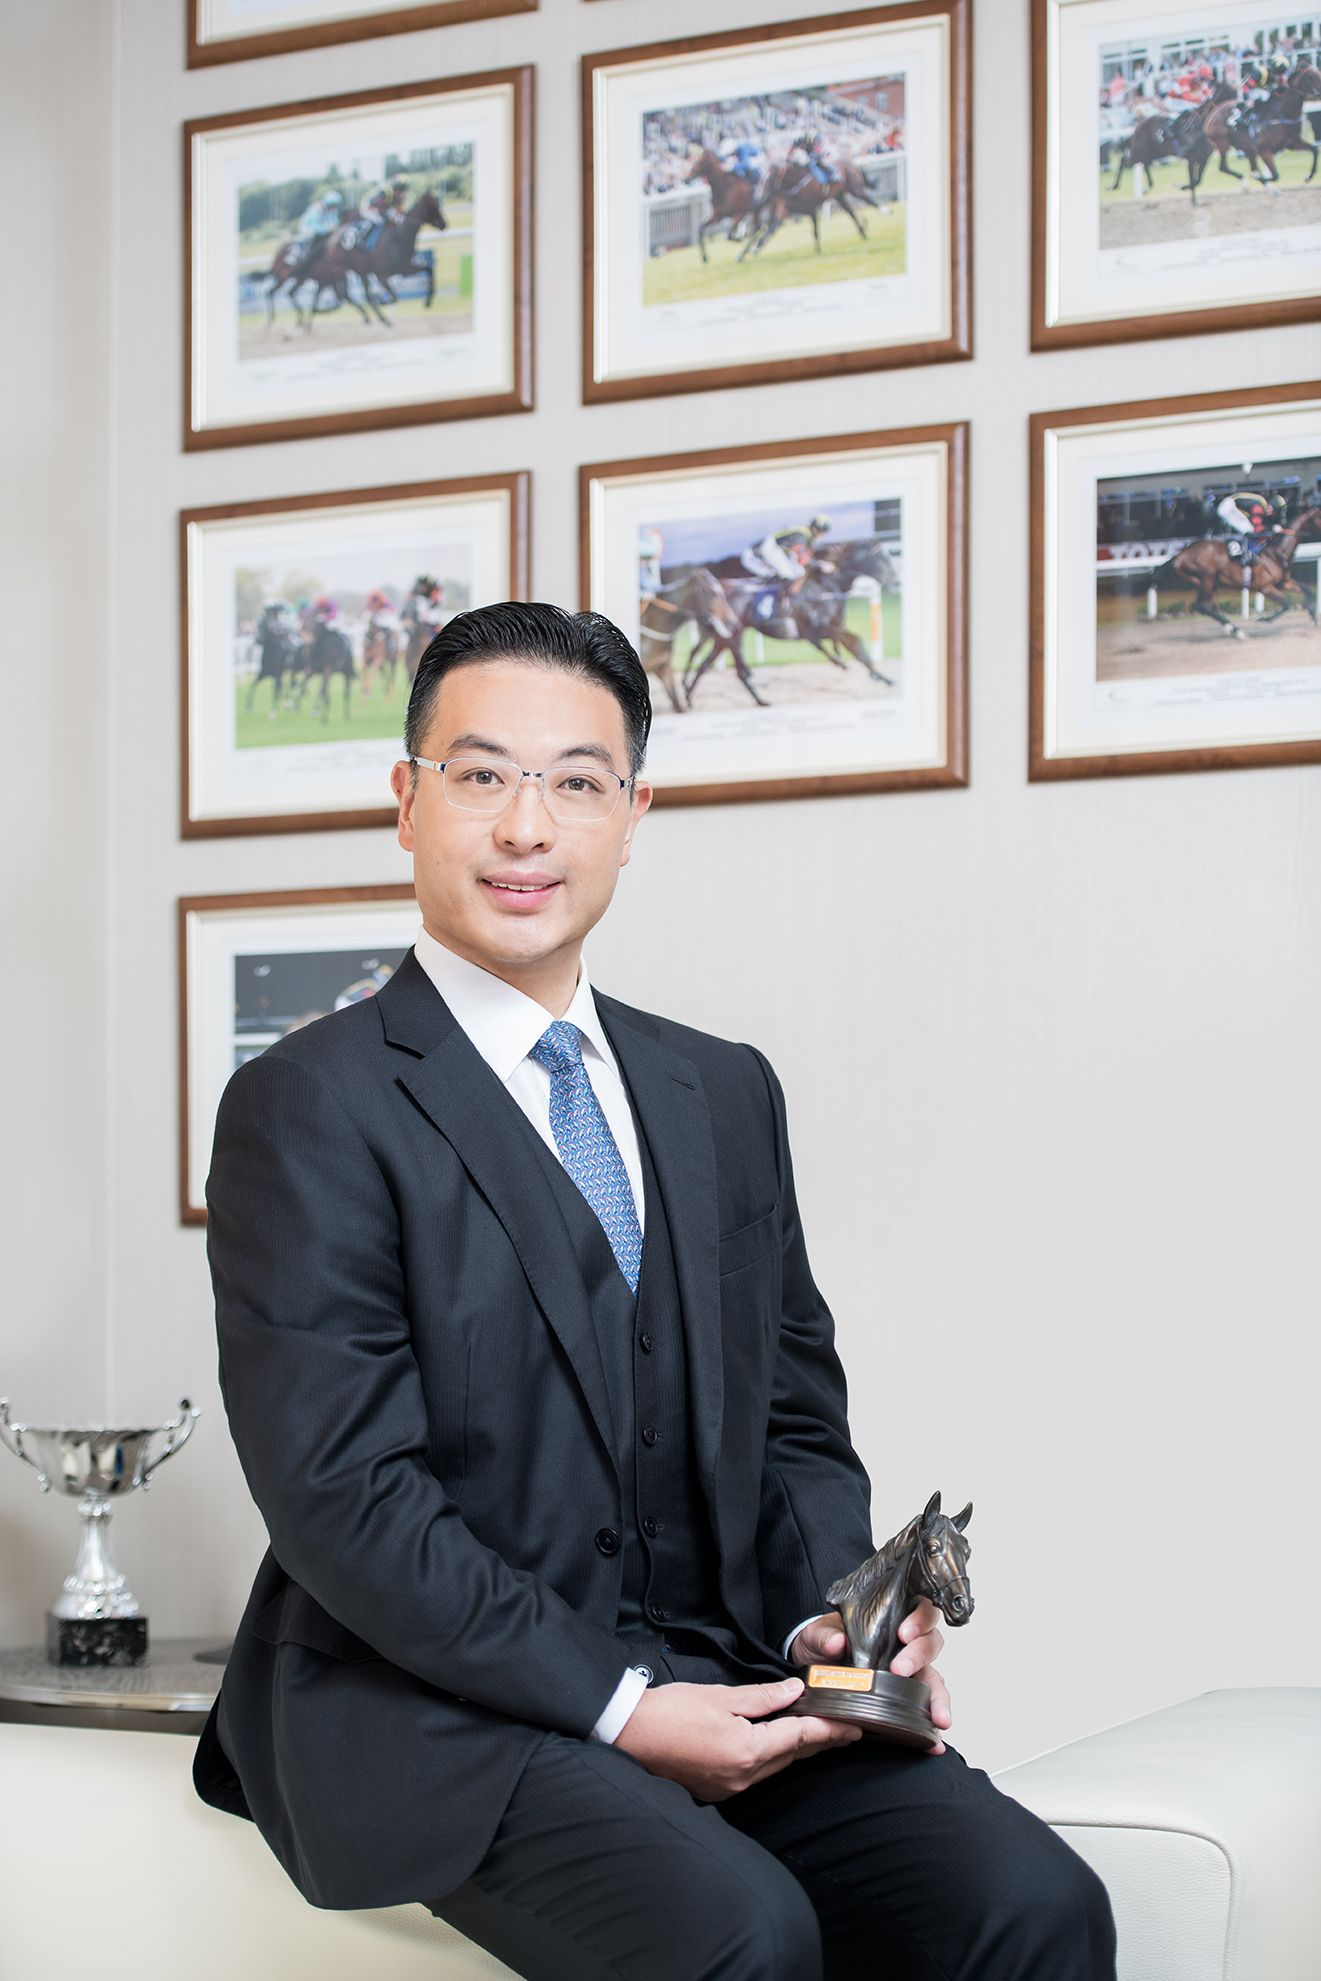 Gift Horse: Global Group's Johnny Hon On Why Racehorses Are A Good Investment